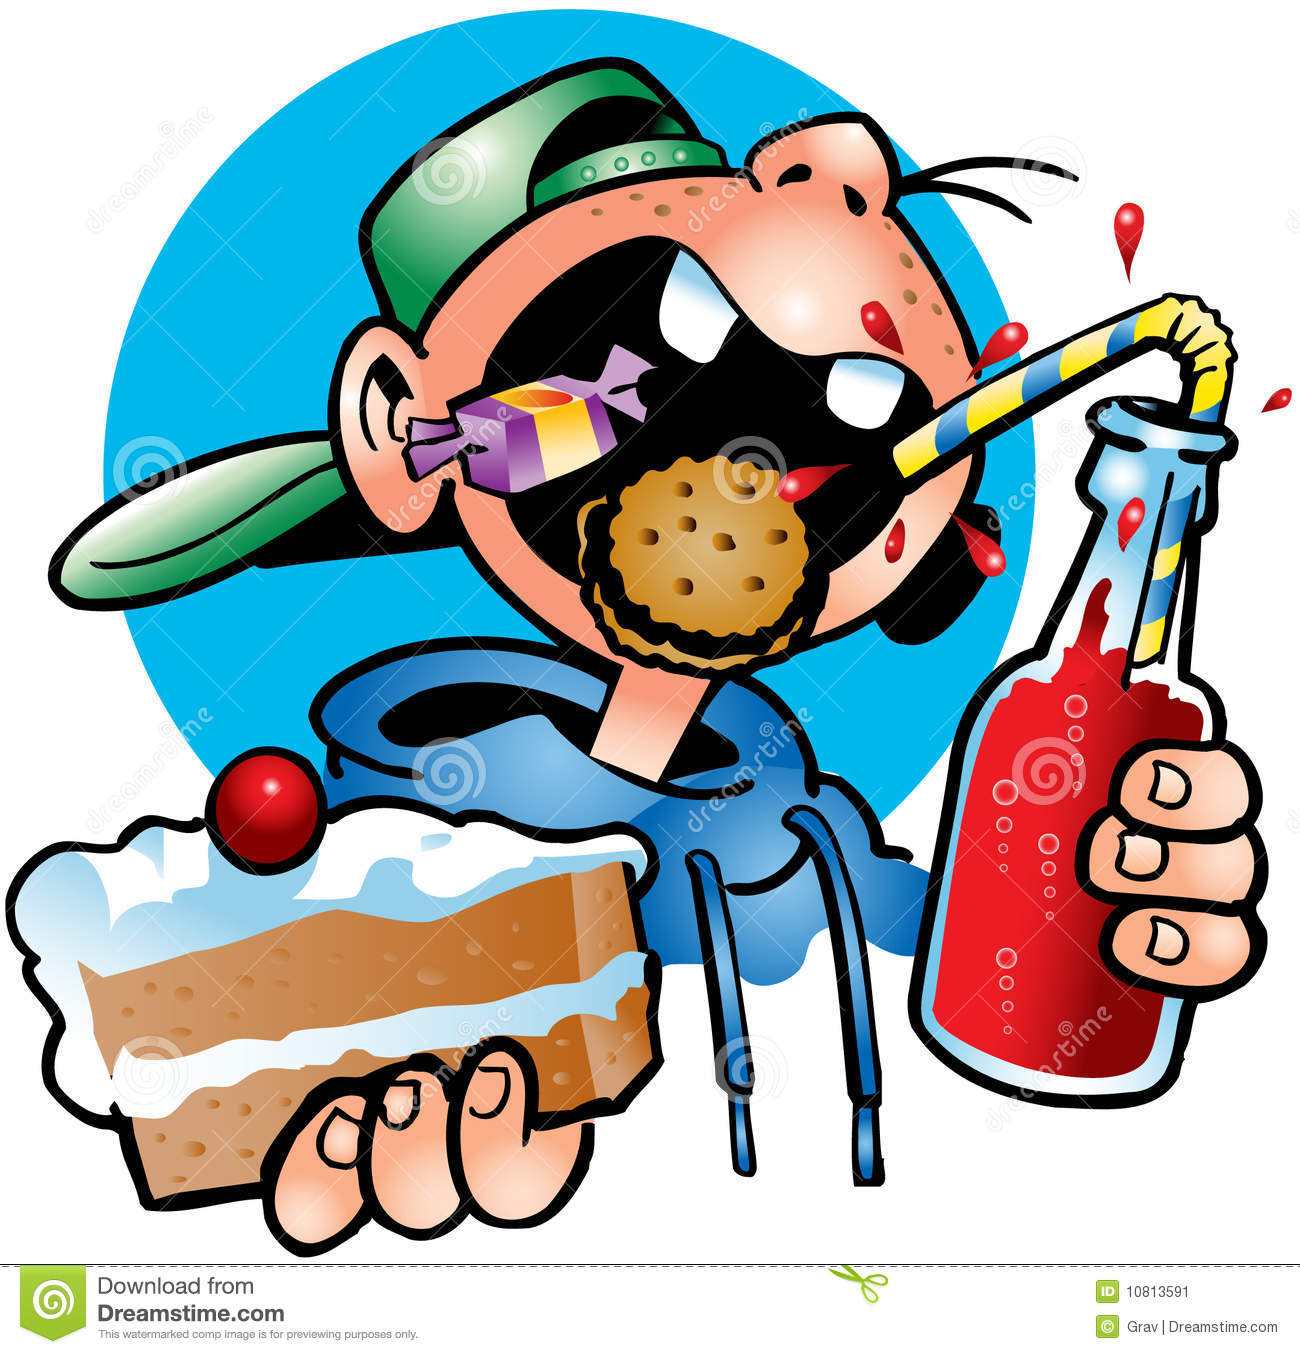 Gallery For > Glutton Clipart.